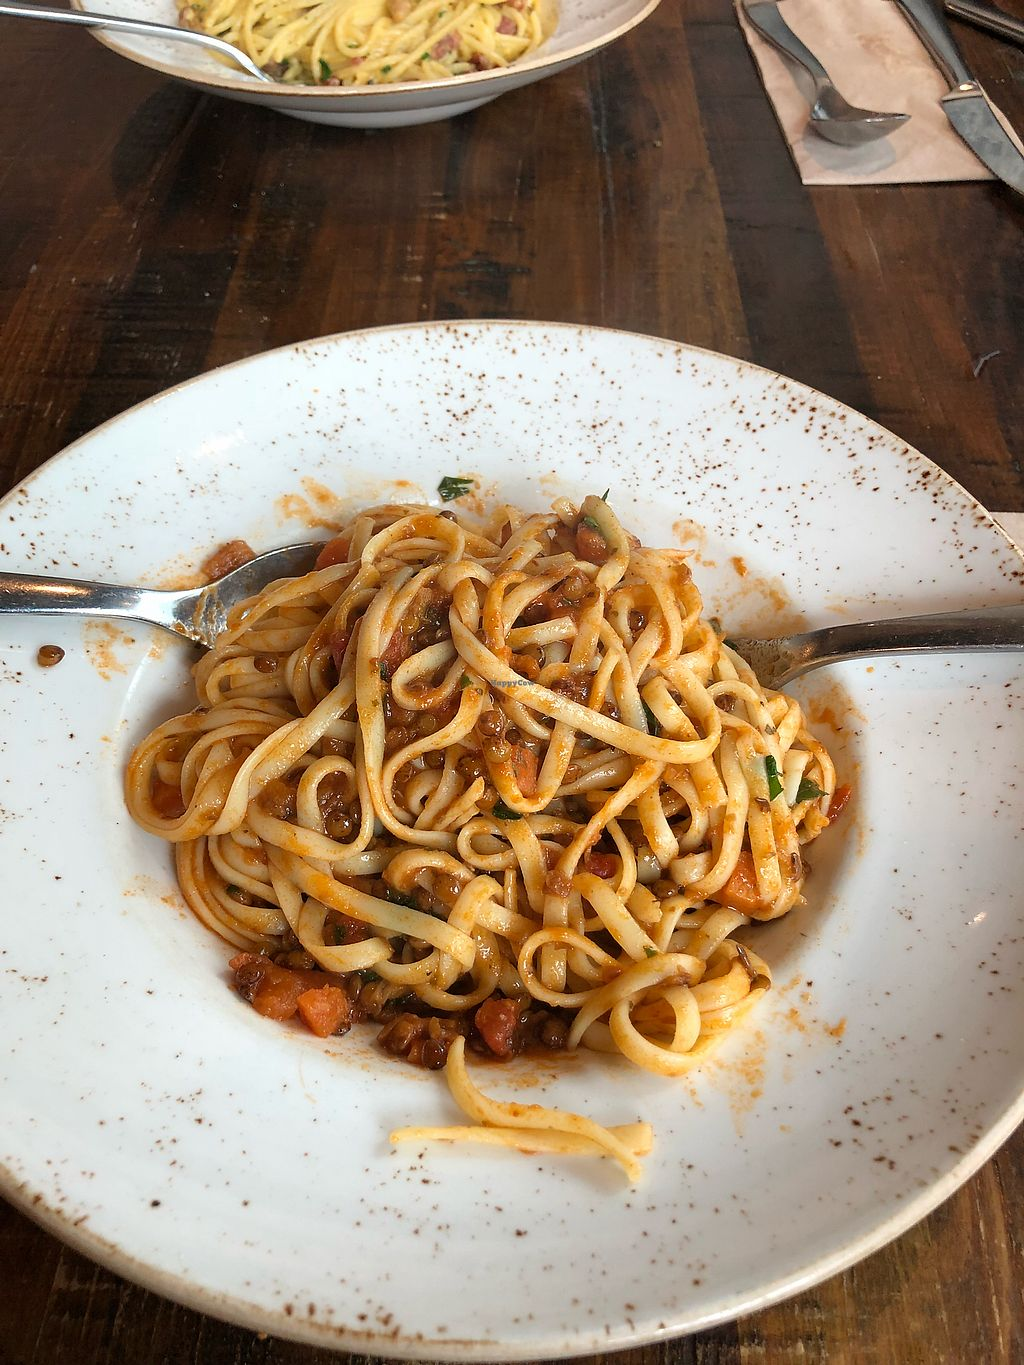 """Photo of Zizzi  by <a href=""""/members/profile/CourtneyK"""">CourtneyK</a> <br/>Lentil pasta <br/> April 12, 2018  - <a href='/contact/abuse/image/77580/384502'>Report</a>"""